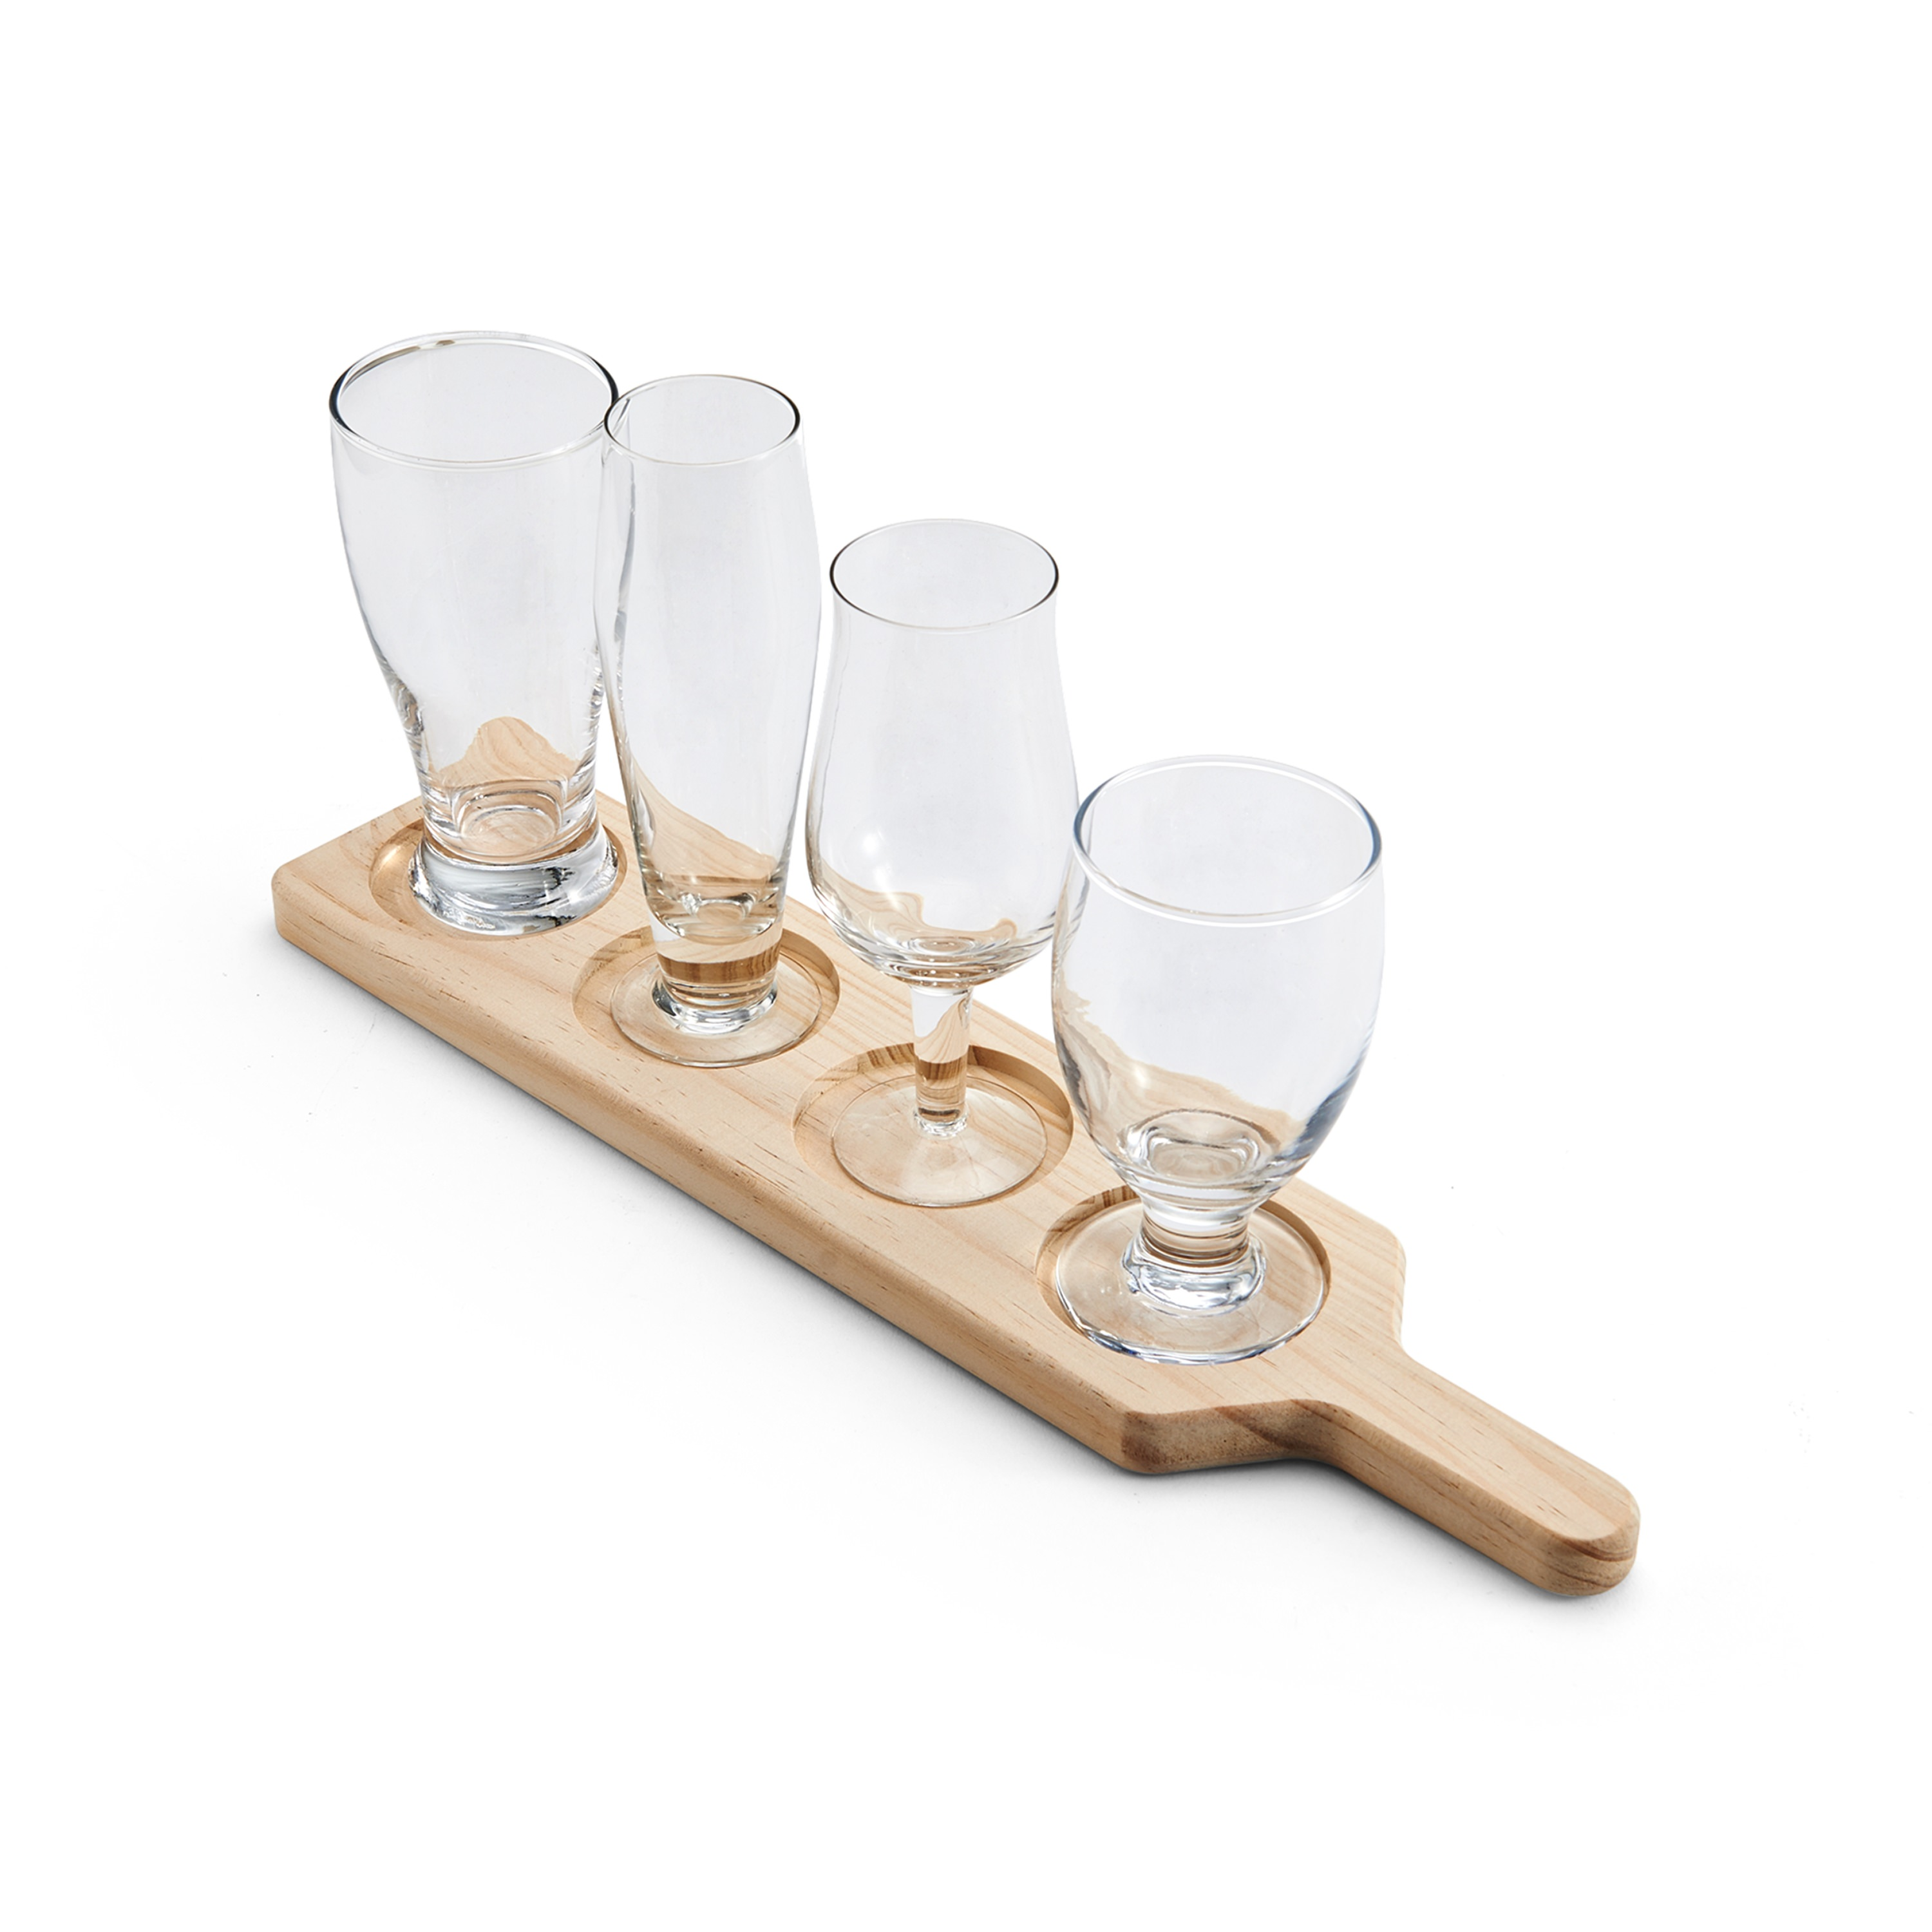 Elements Set of 4 Beer Glasses with Wood Stand by Lifetime Brands